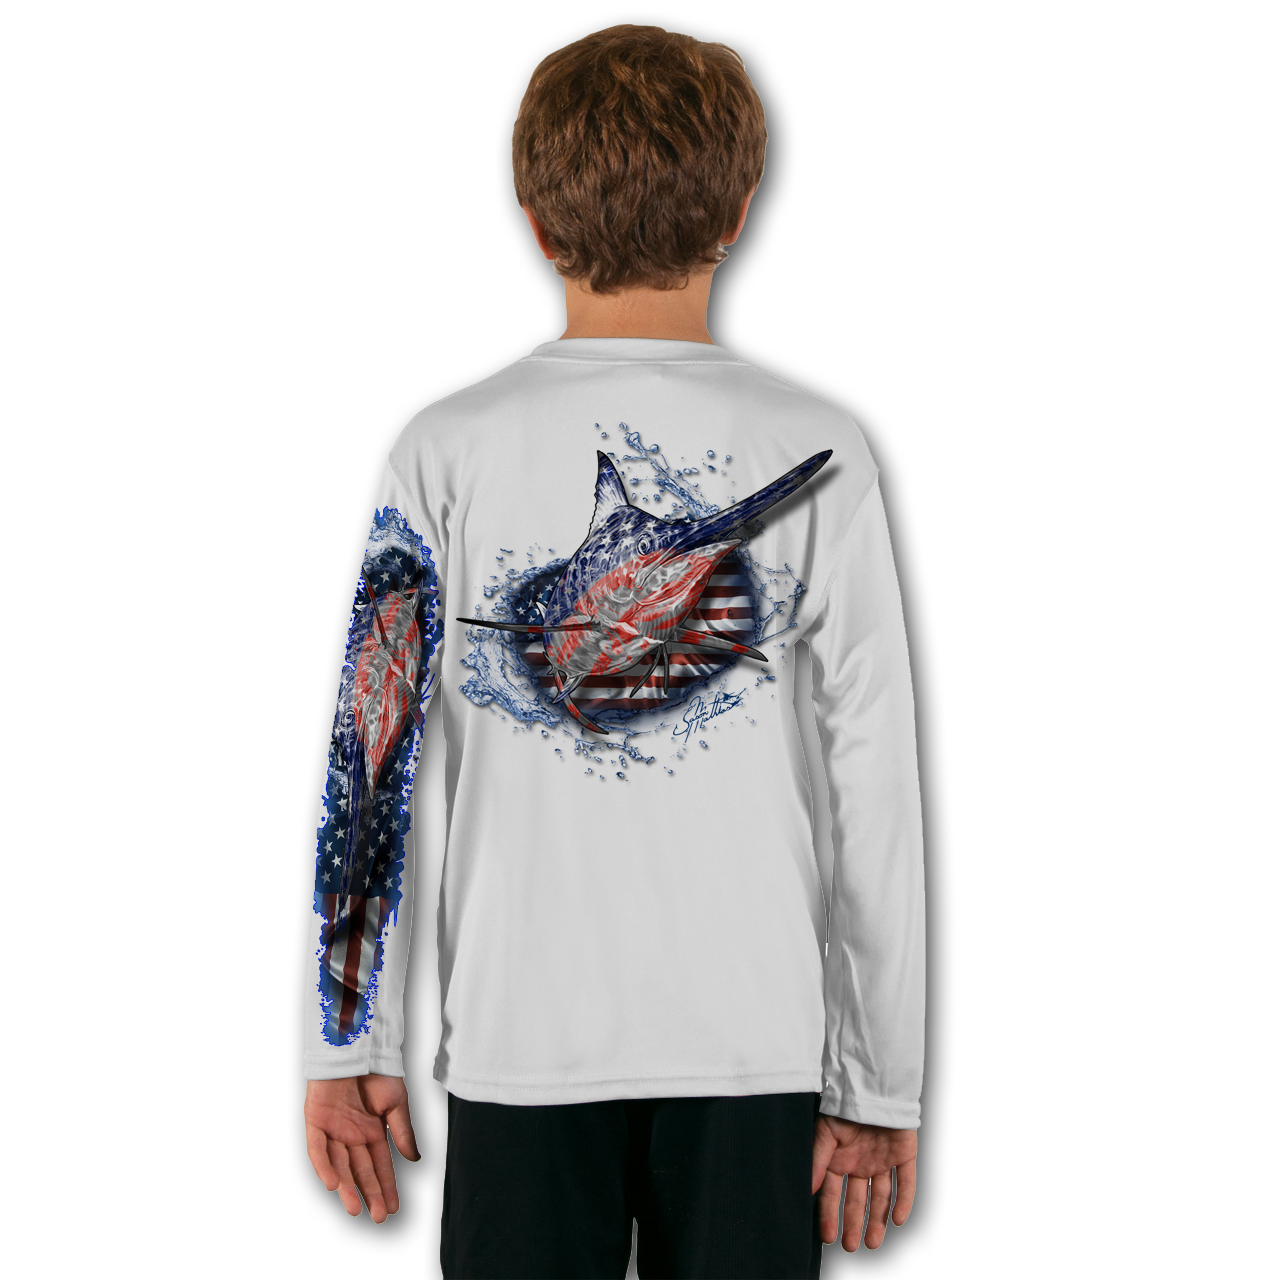 jason-mathias-american-flag-marlin-youth-shirt-desing.png